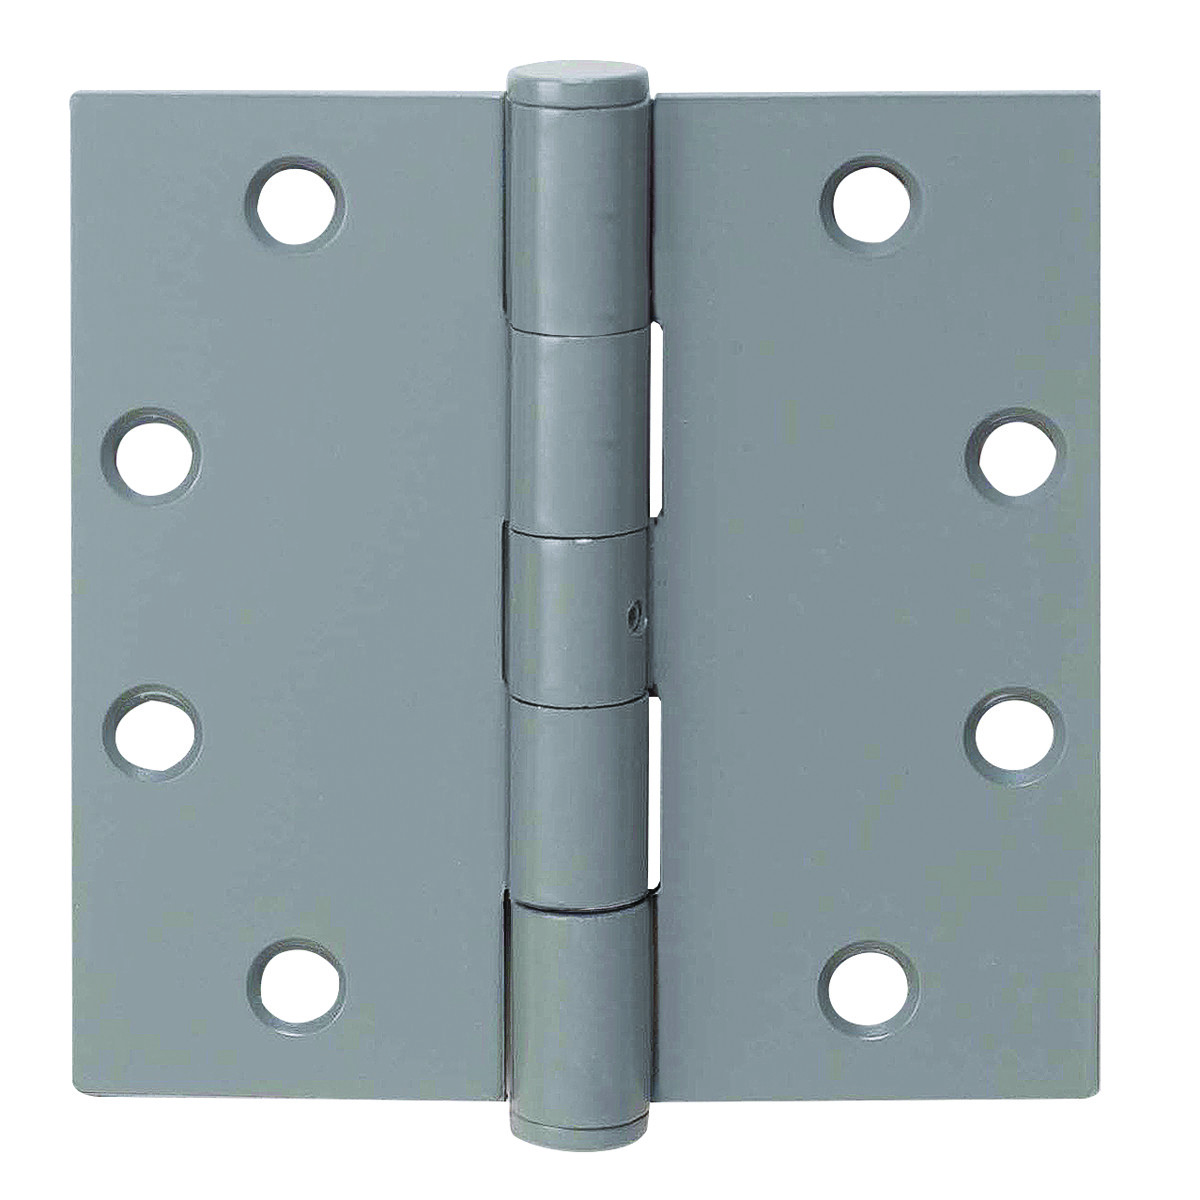 Tell HG100020 S050-028 4-1/2 Inch Square Prime Coat Door Hinge Pack ...